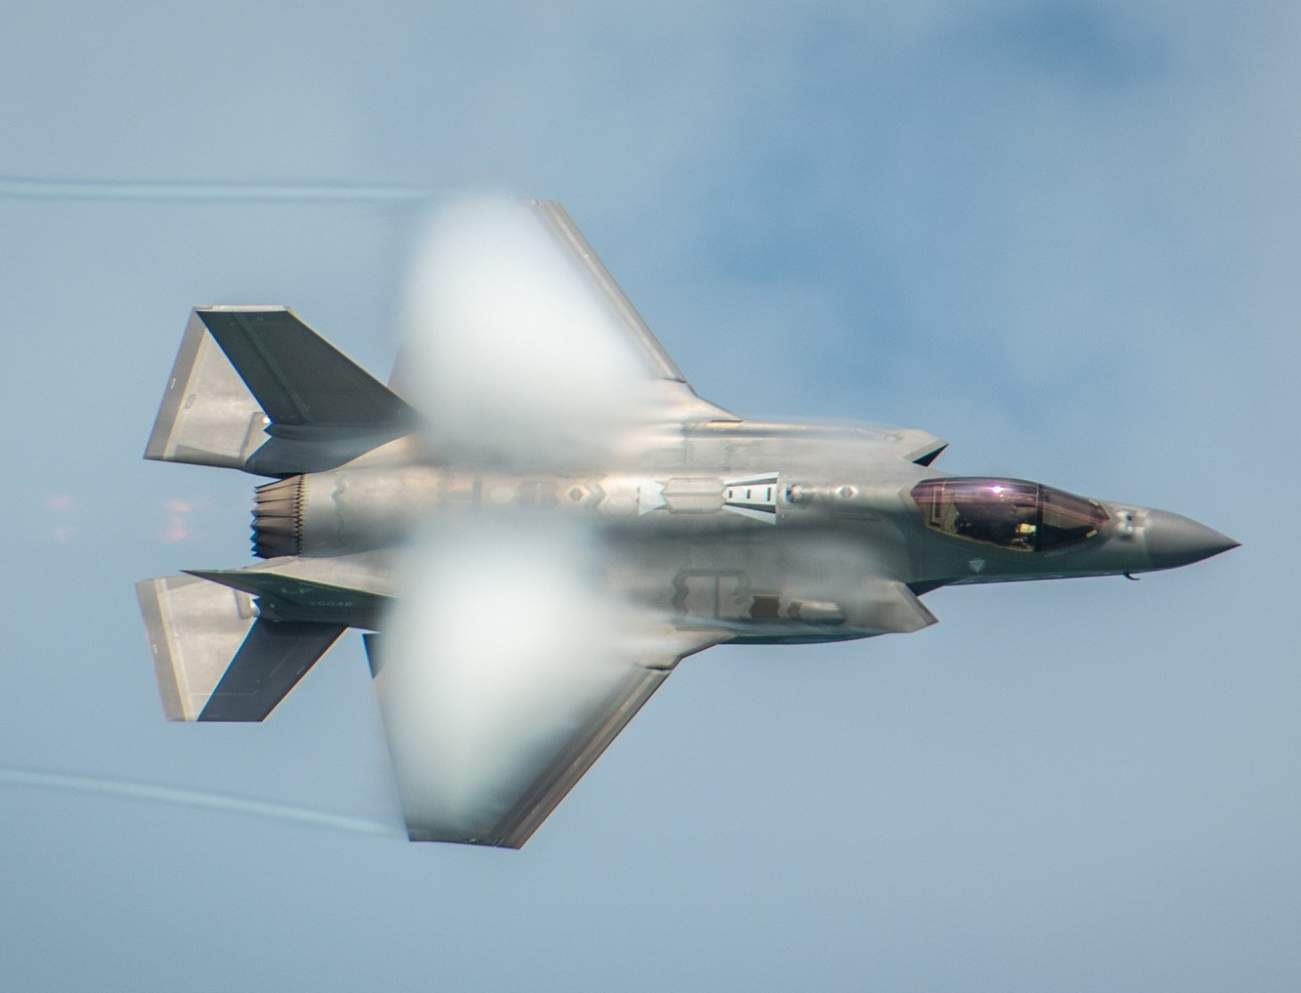 The F-35 Can't Fire Its Cannon Without Committing Suicide